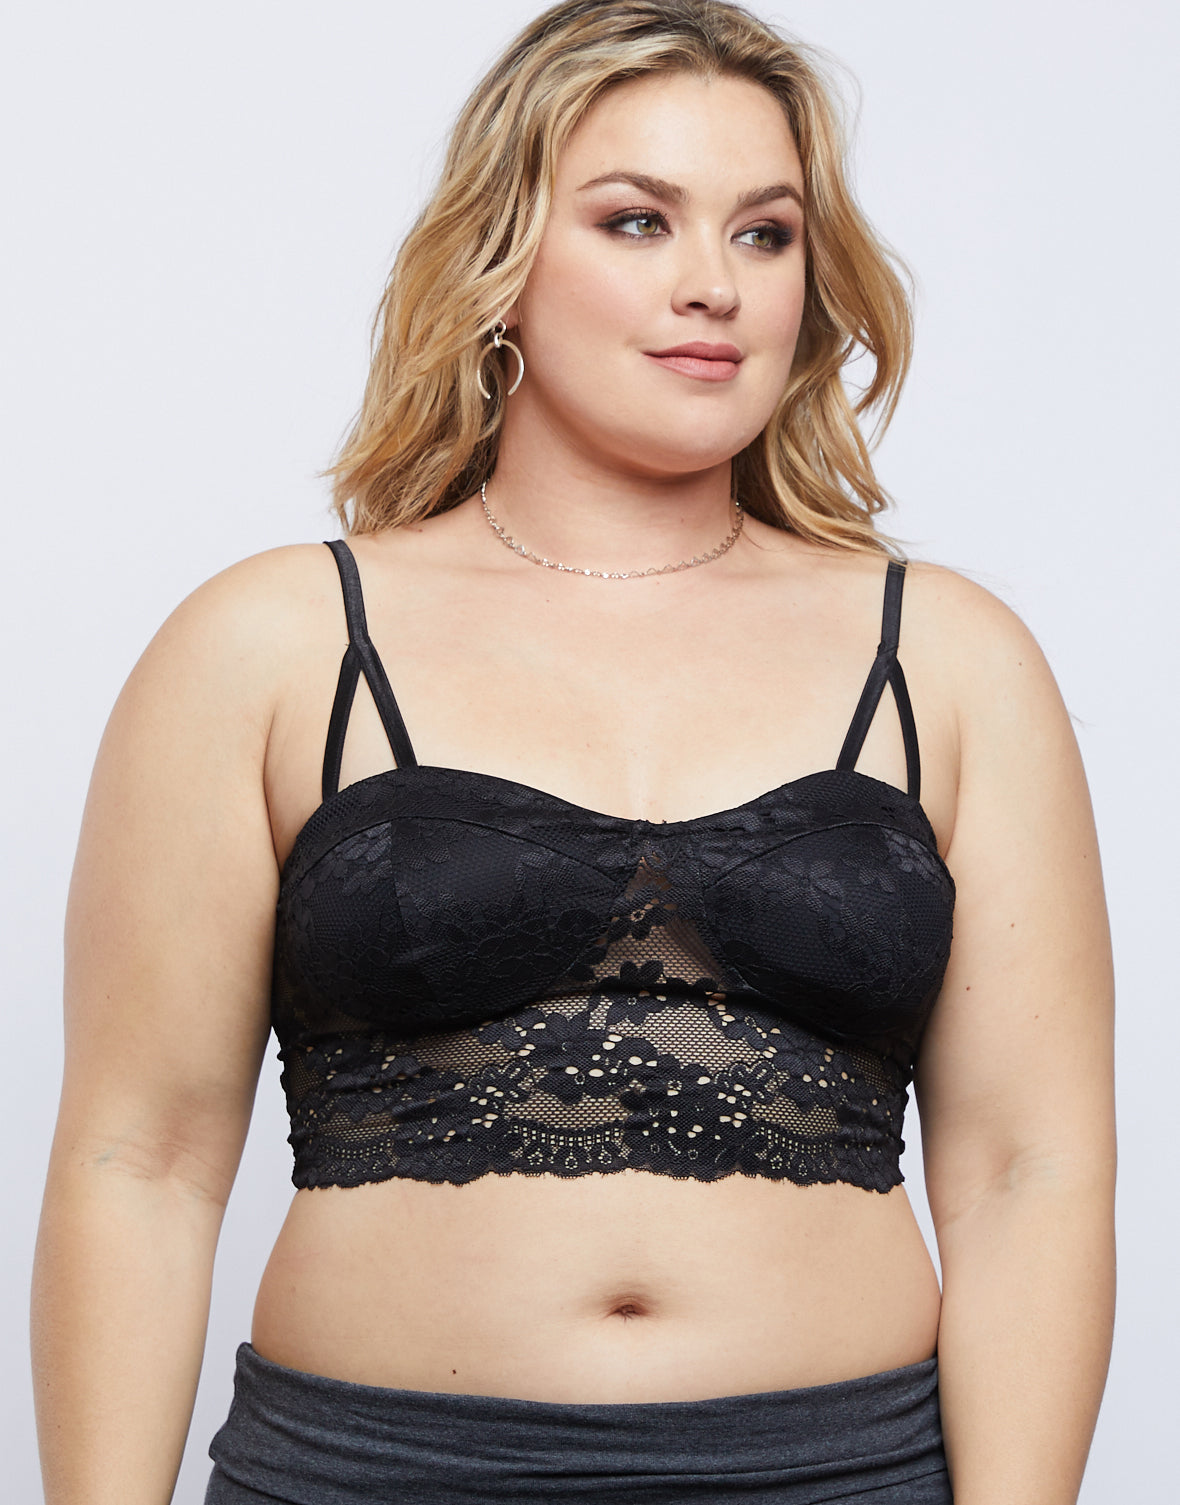 Plus Size Just Lacey Bralette